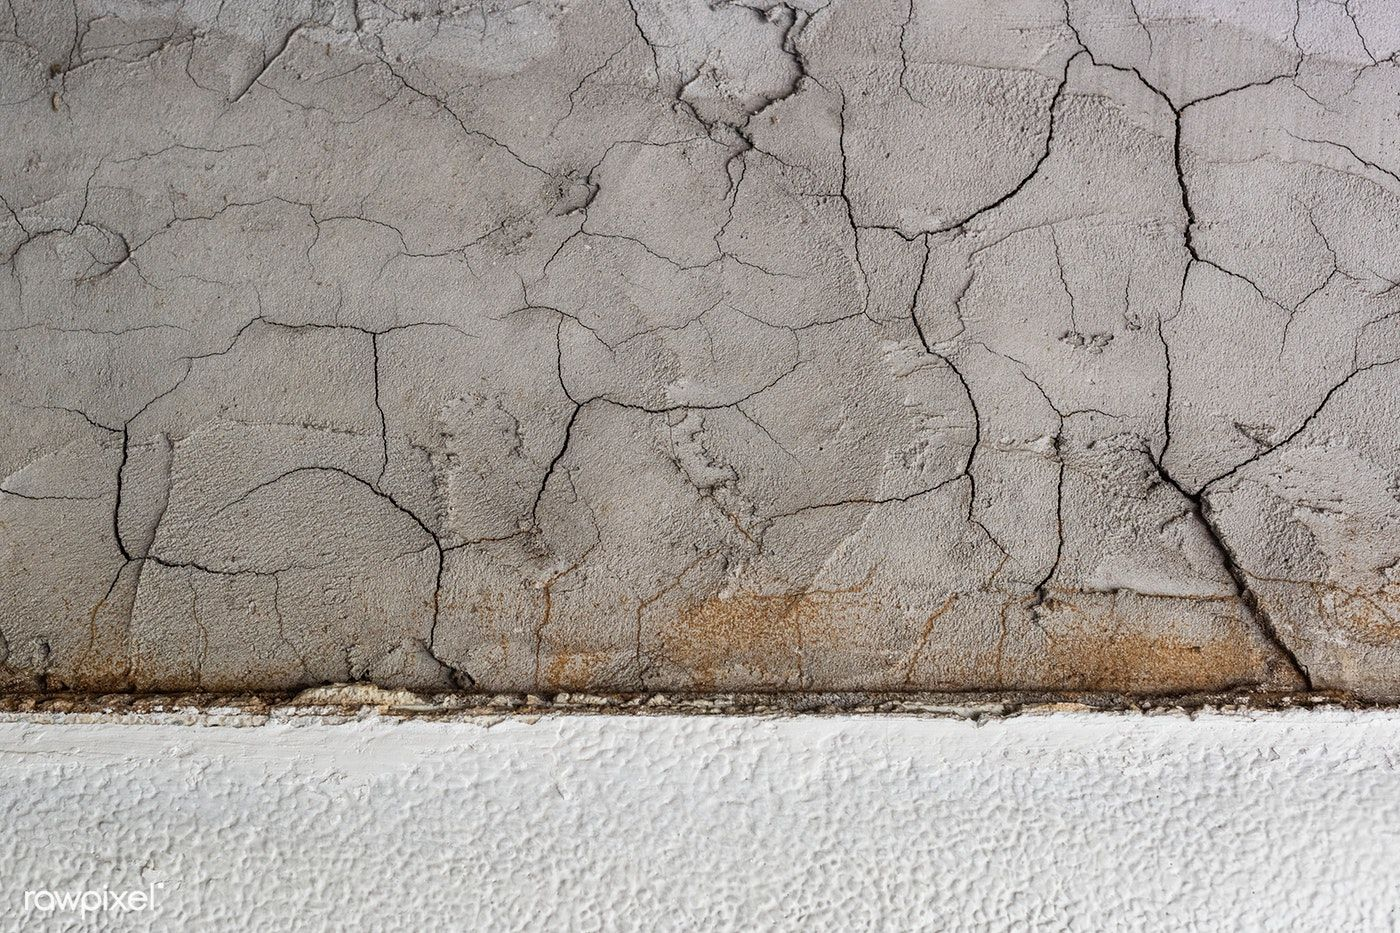 Cracked Cement Wall Textured Background Free Image By Rawpixel Com In 2020 Textured Background Cement Walls Concrete Wall Texture